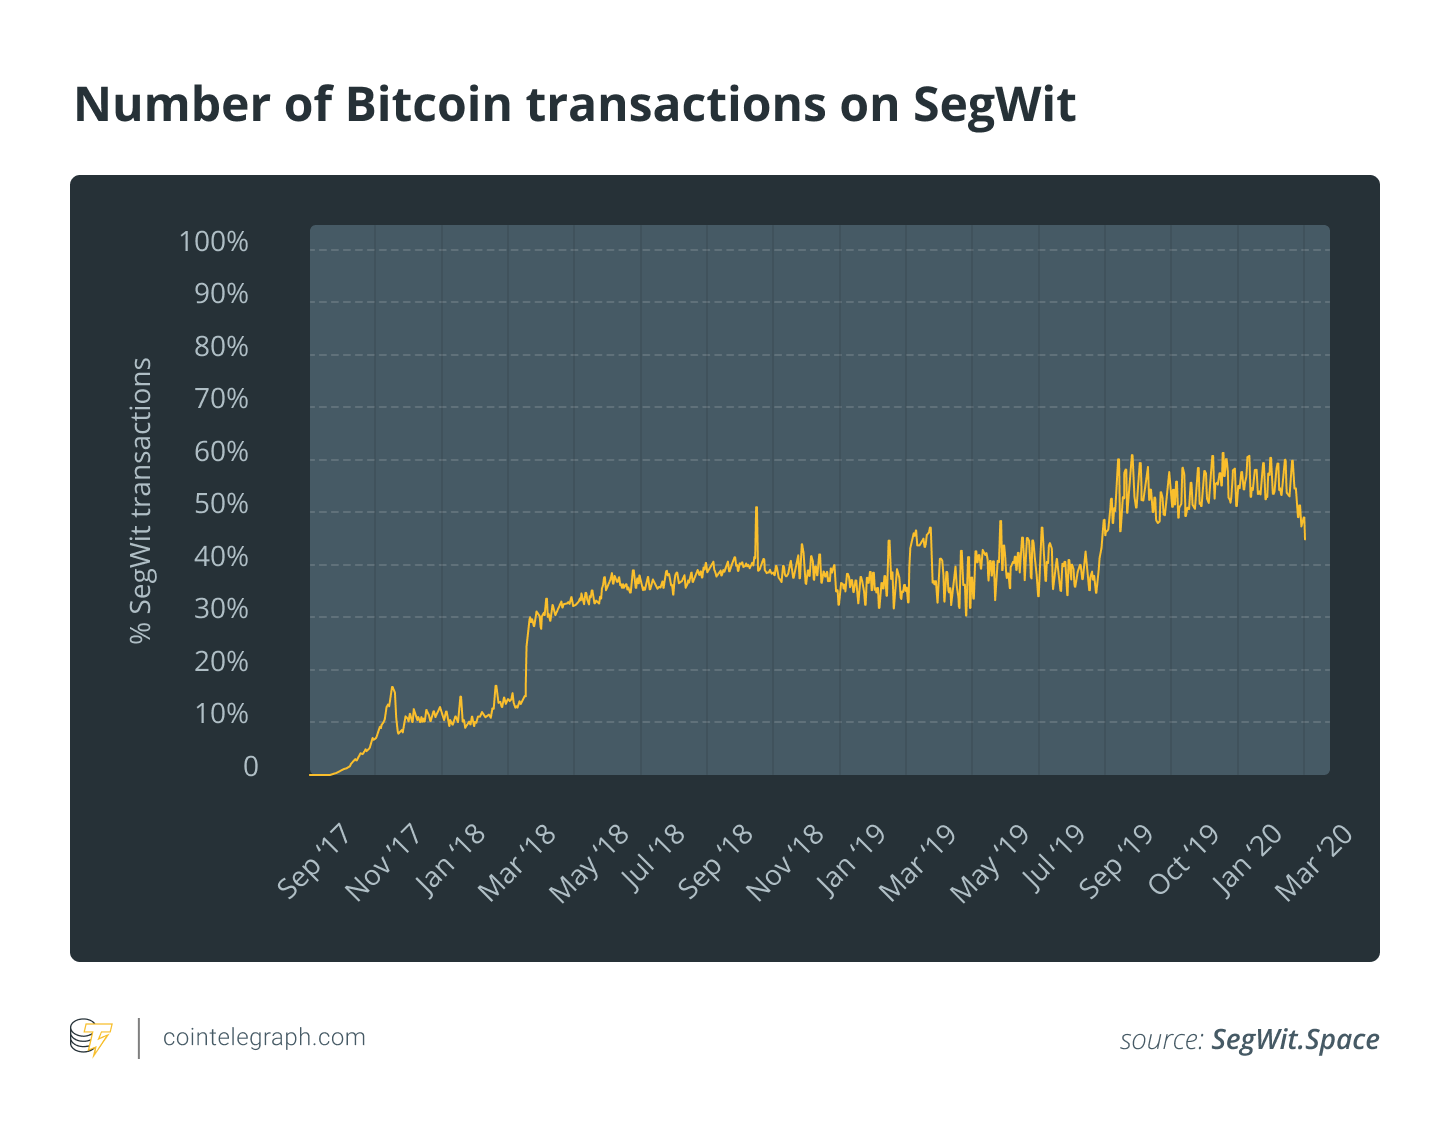 Number of Bitcoin transactions on SegWit